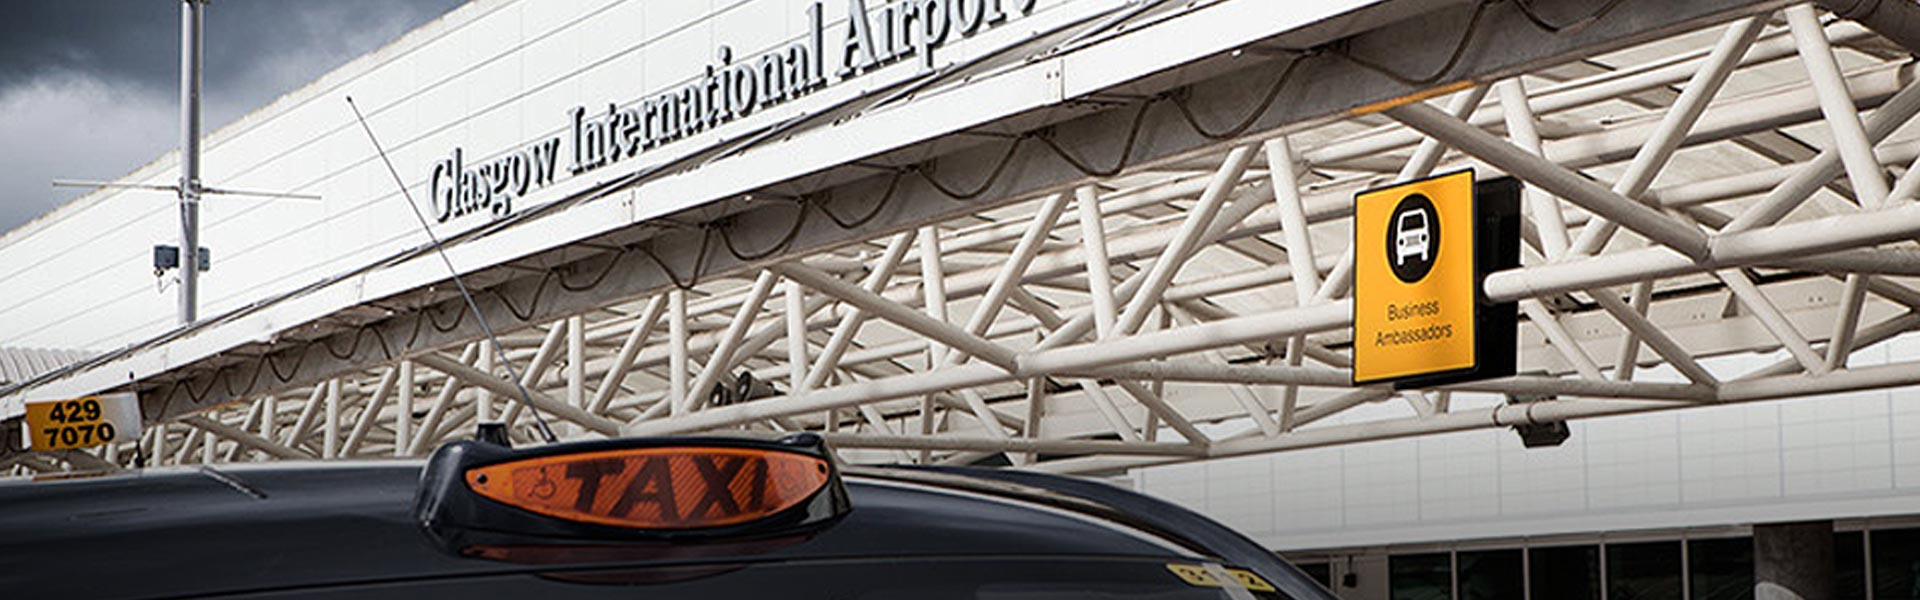 Airport Taxis Glasgow International Airport Glasgow Taxis